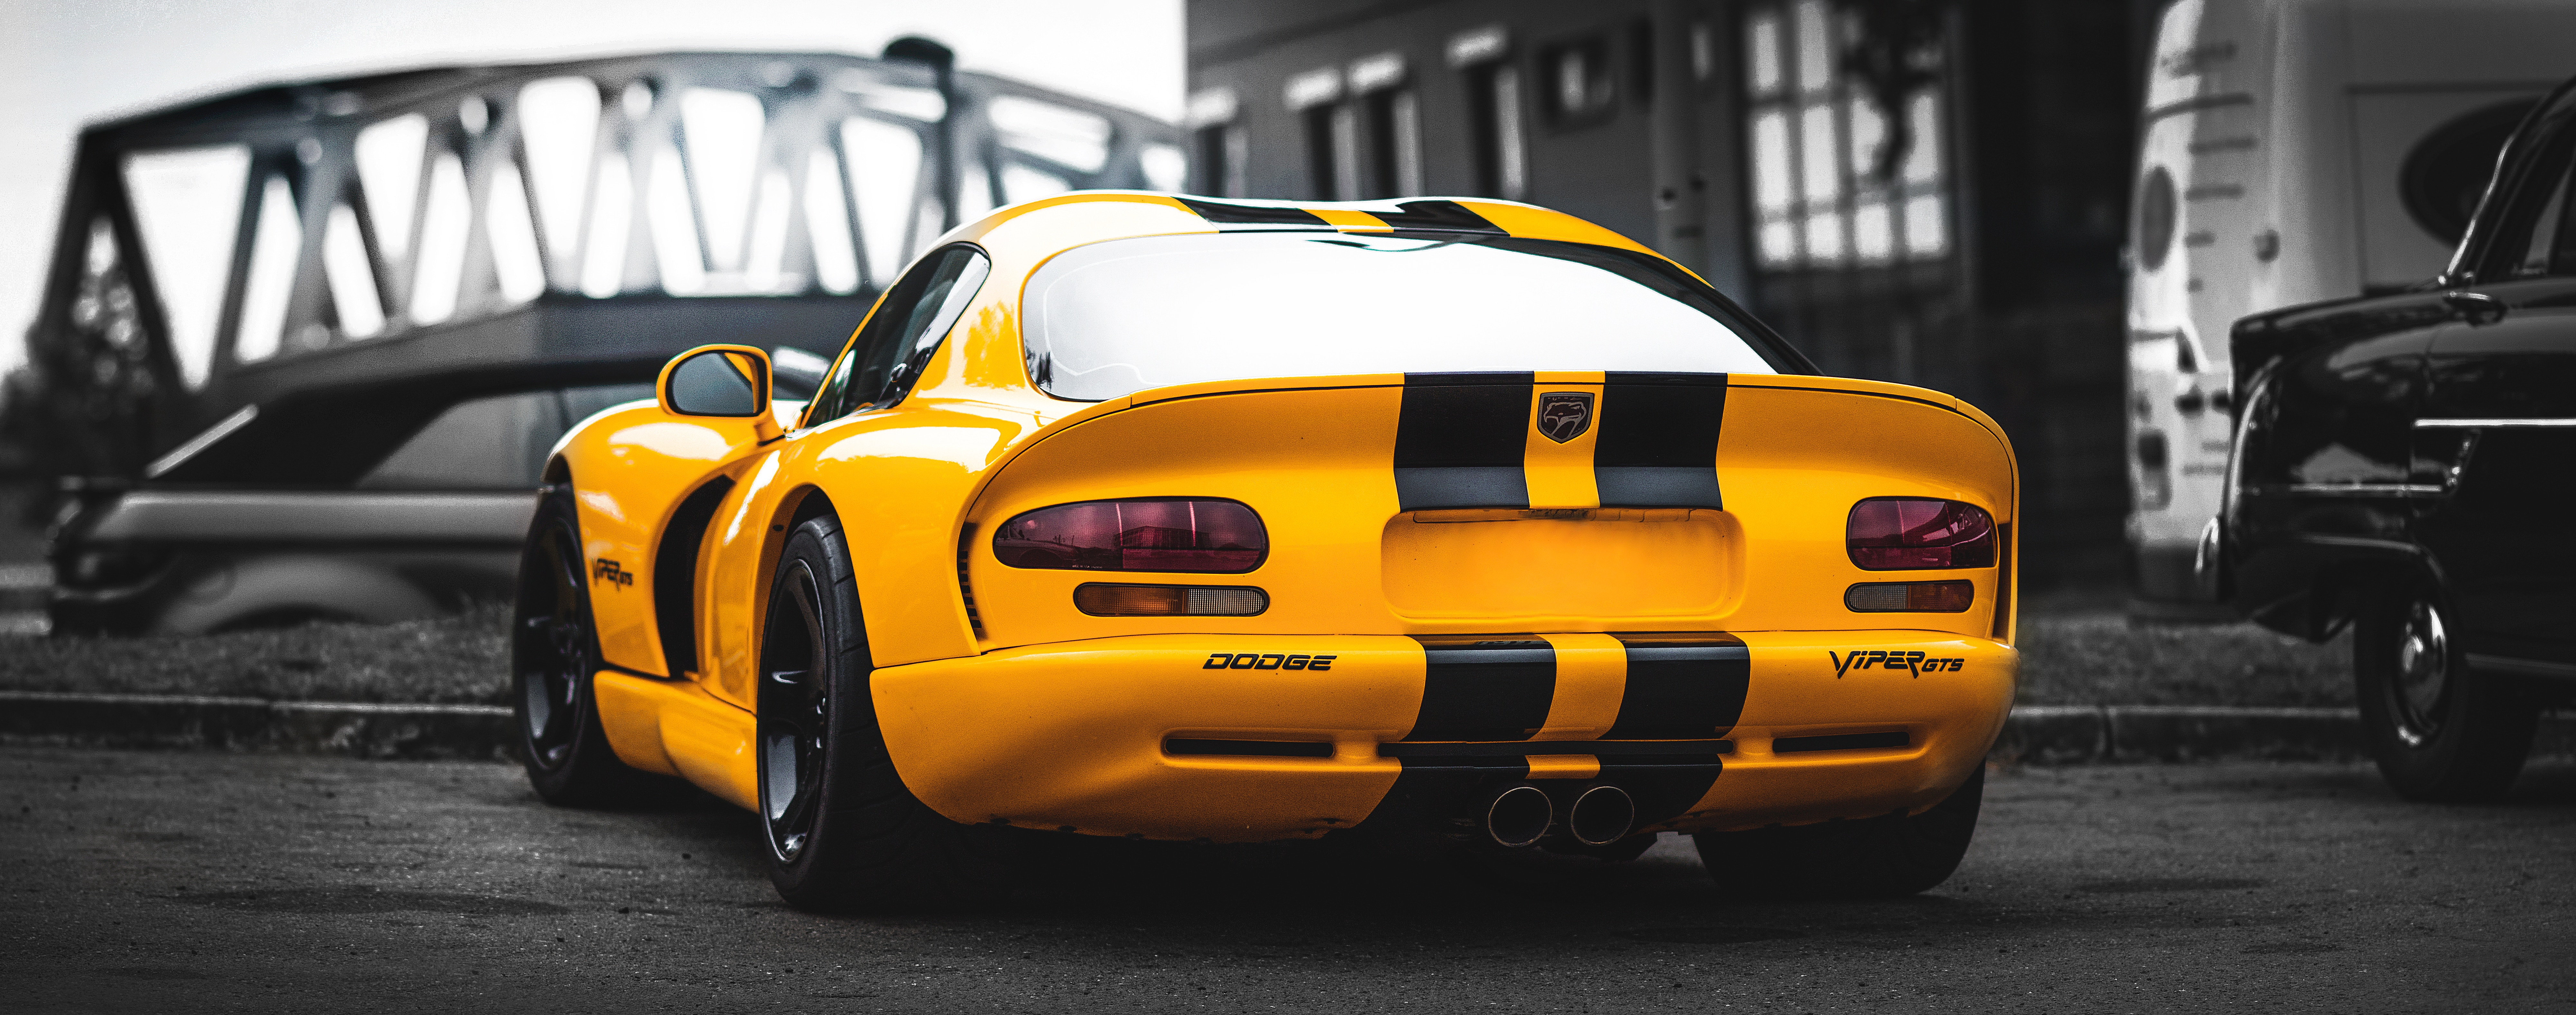 126338 download wallpaper Cars, Auto, Sports Car, Sports, Back View, Rear View screensavers and pictures for free